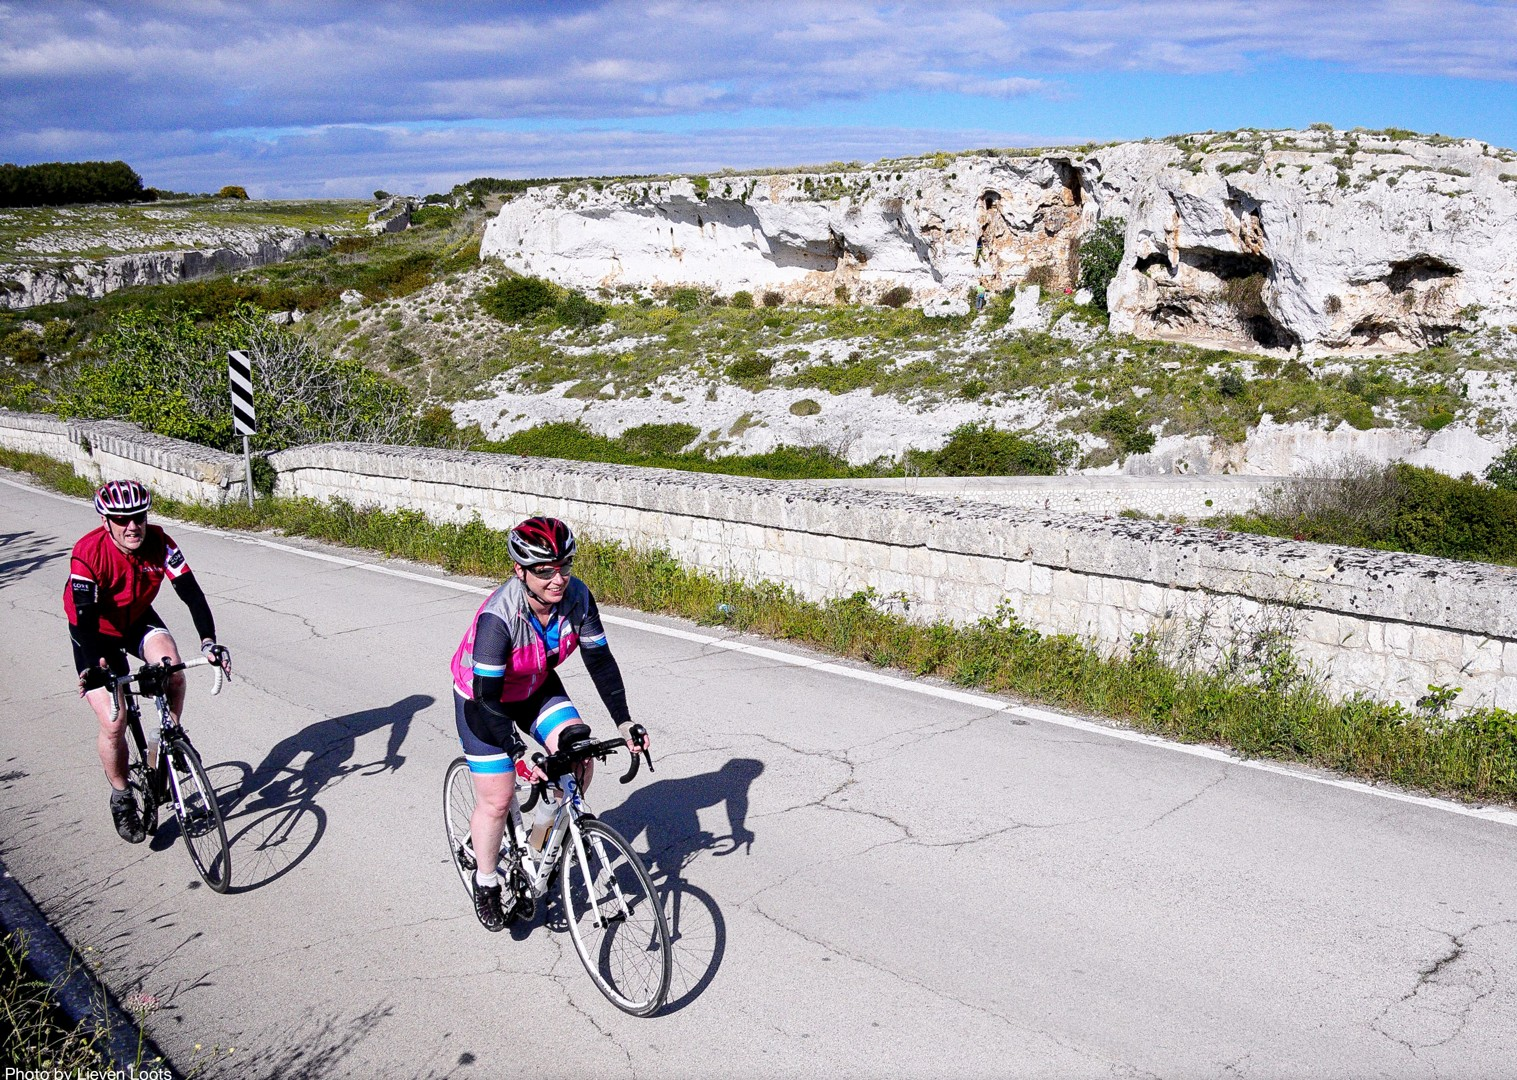 cycling-holiday-in-puglia-italy.jpg - Italy - Puglia - The Beautiful South - Guided Road Cycling Holiday - Road Cycling